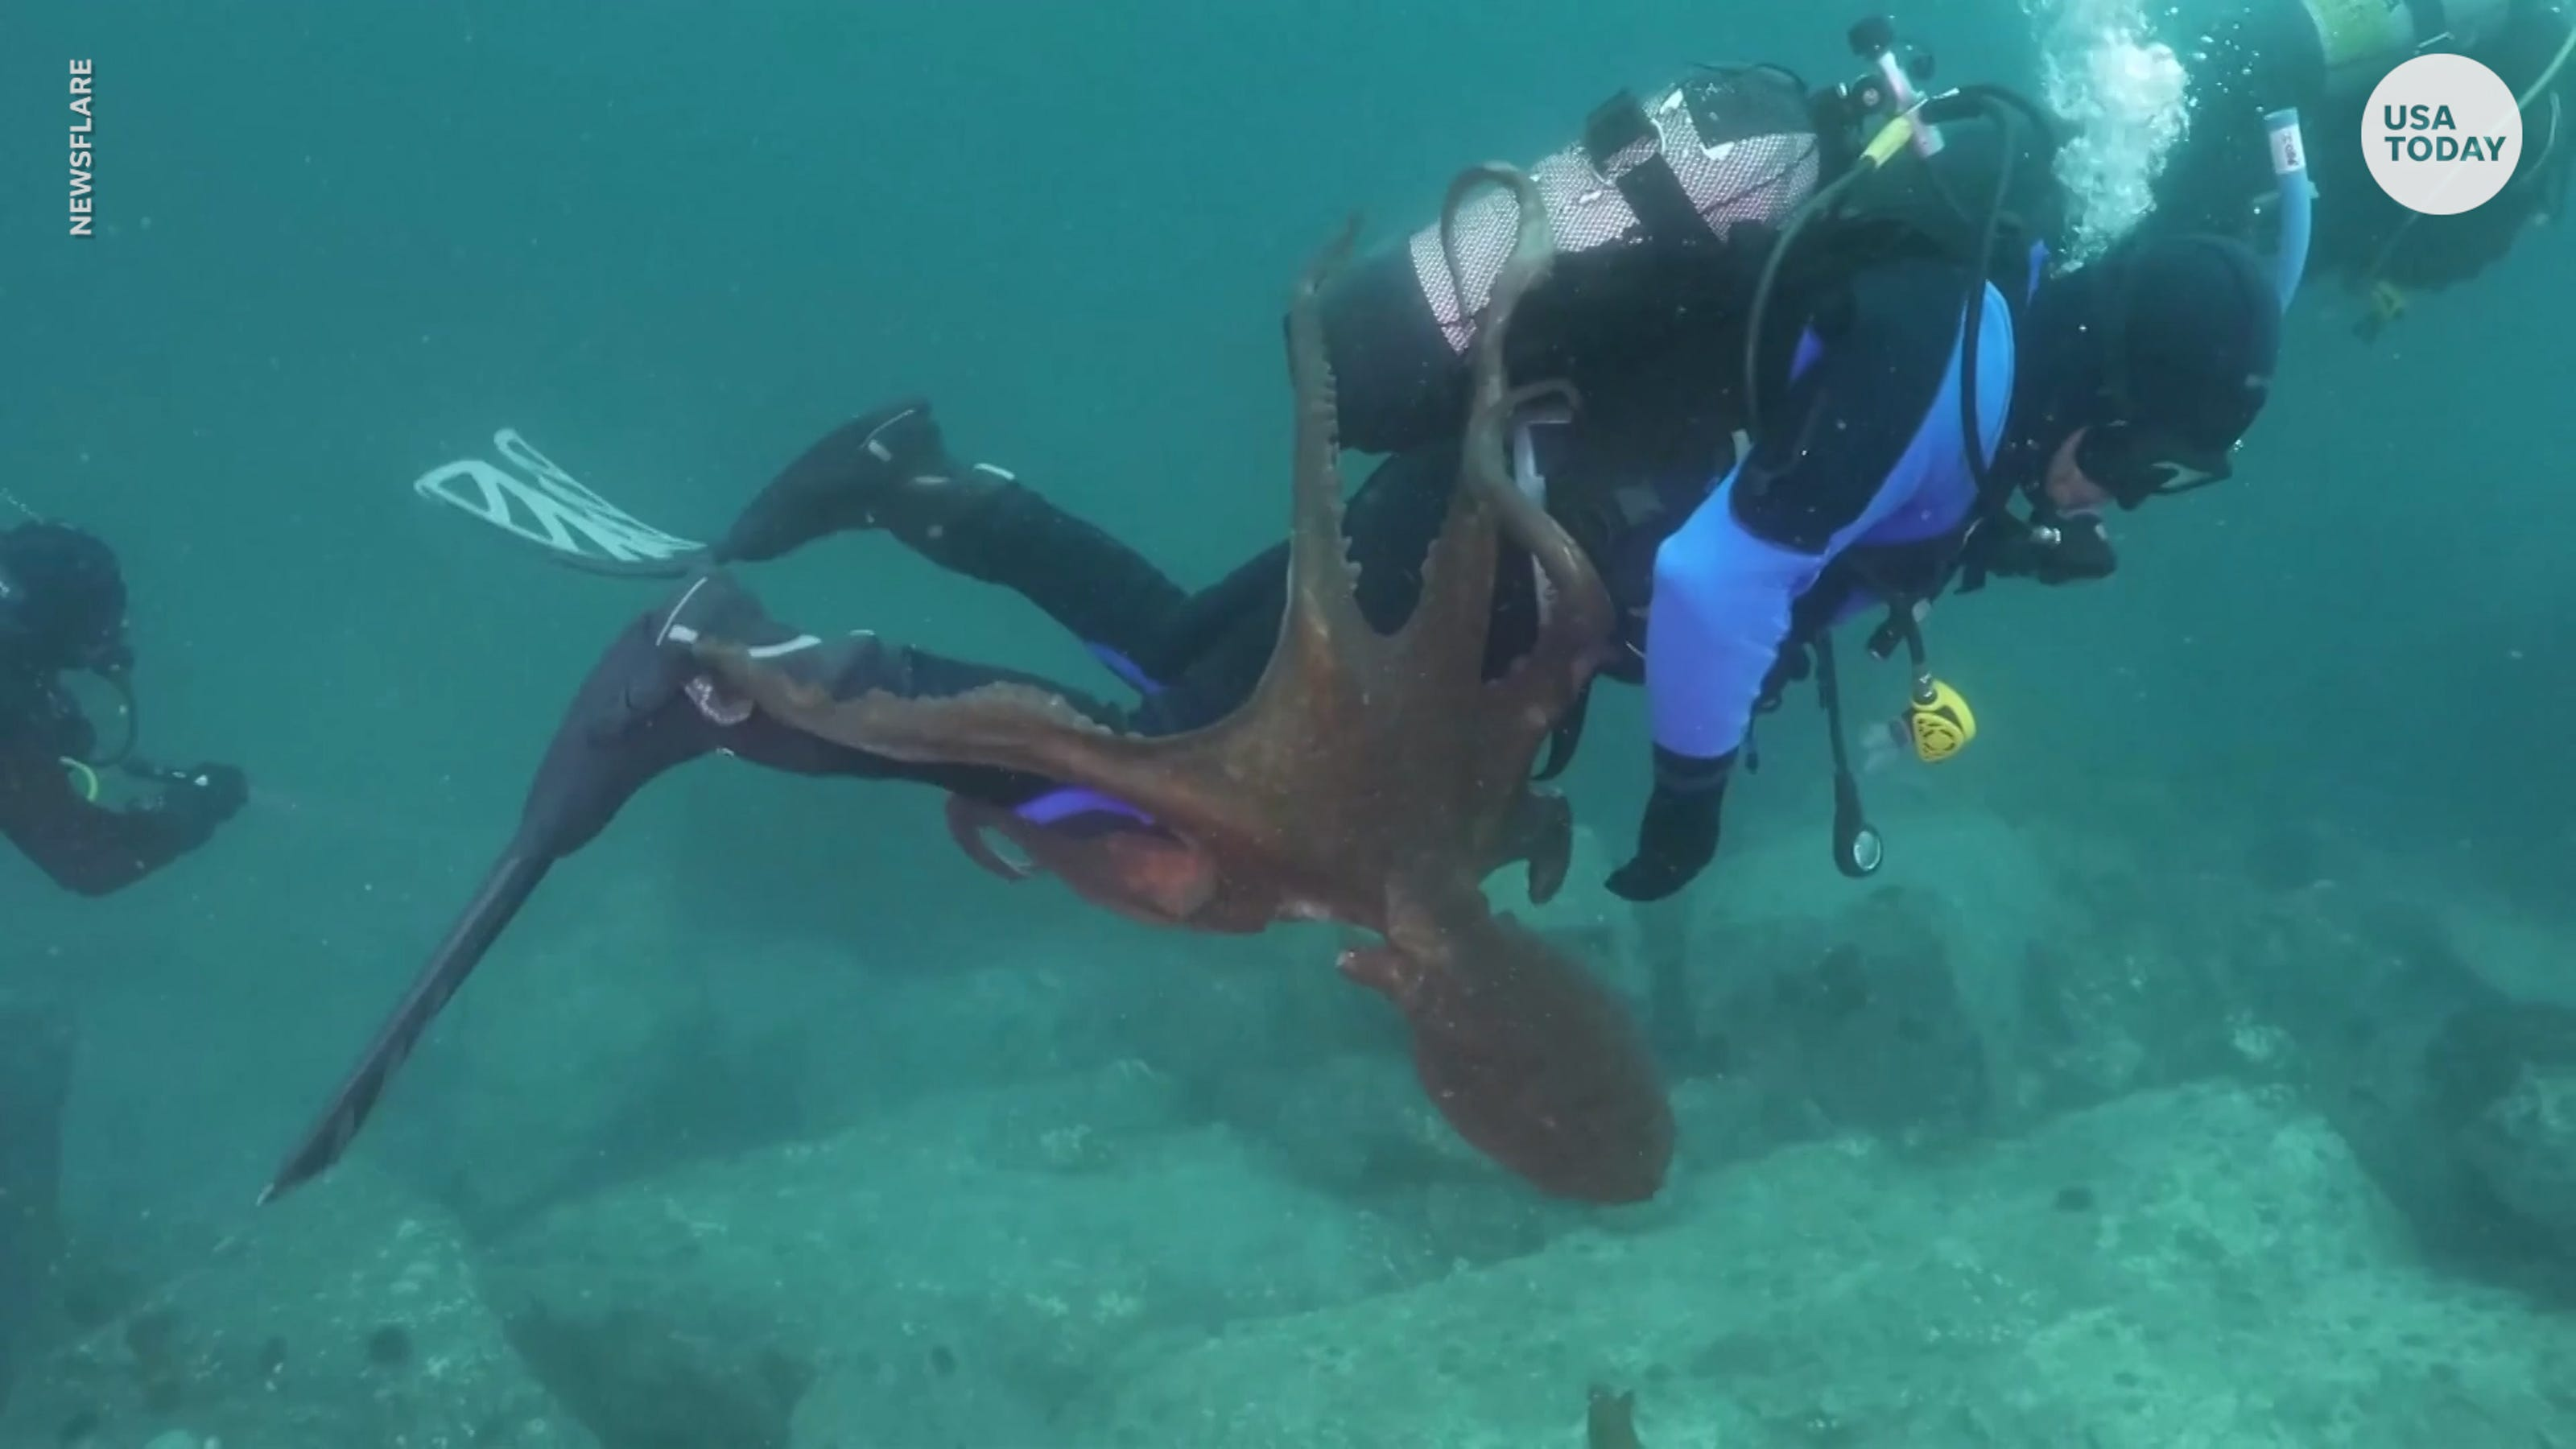 Giant octopus attacks diver in Sea of Japan